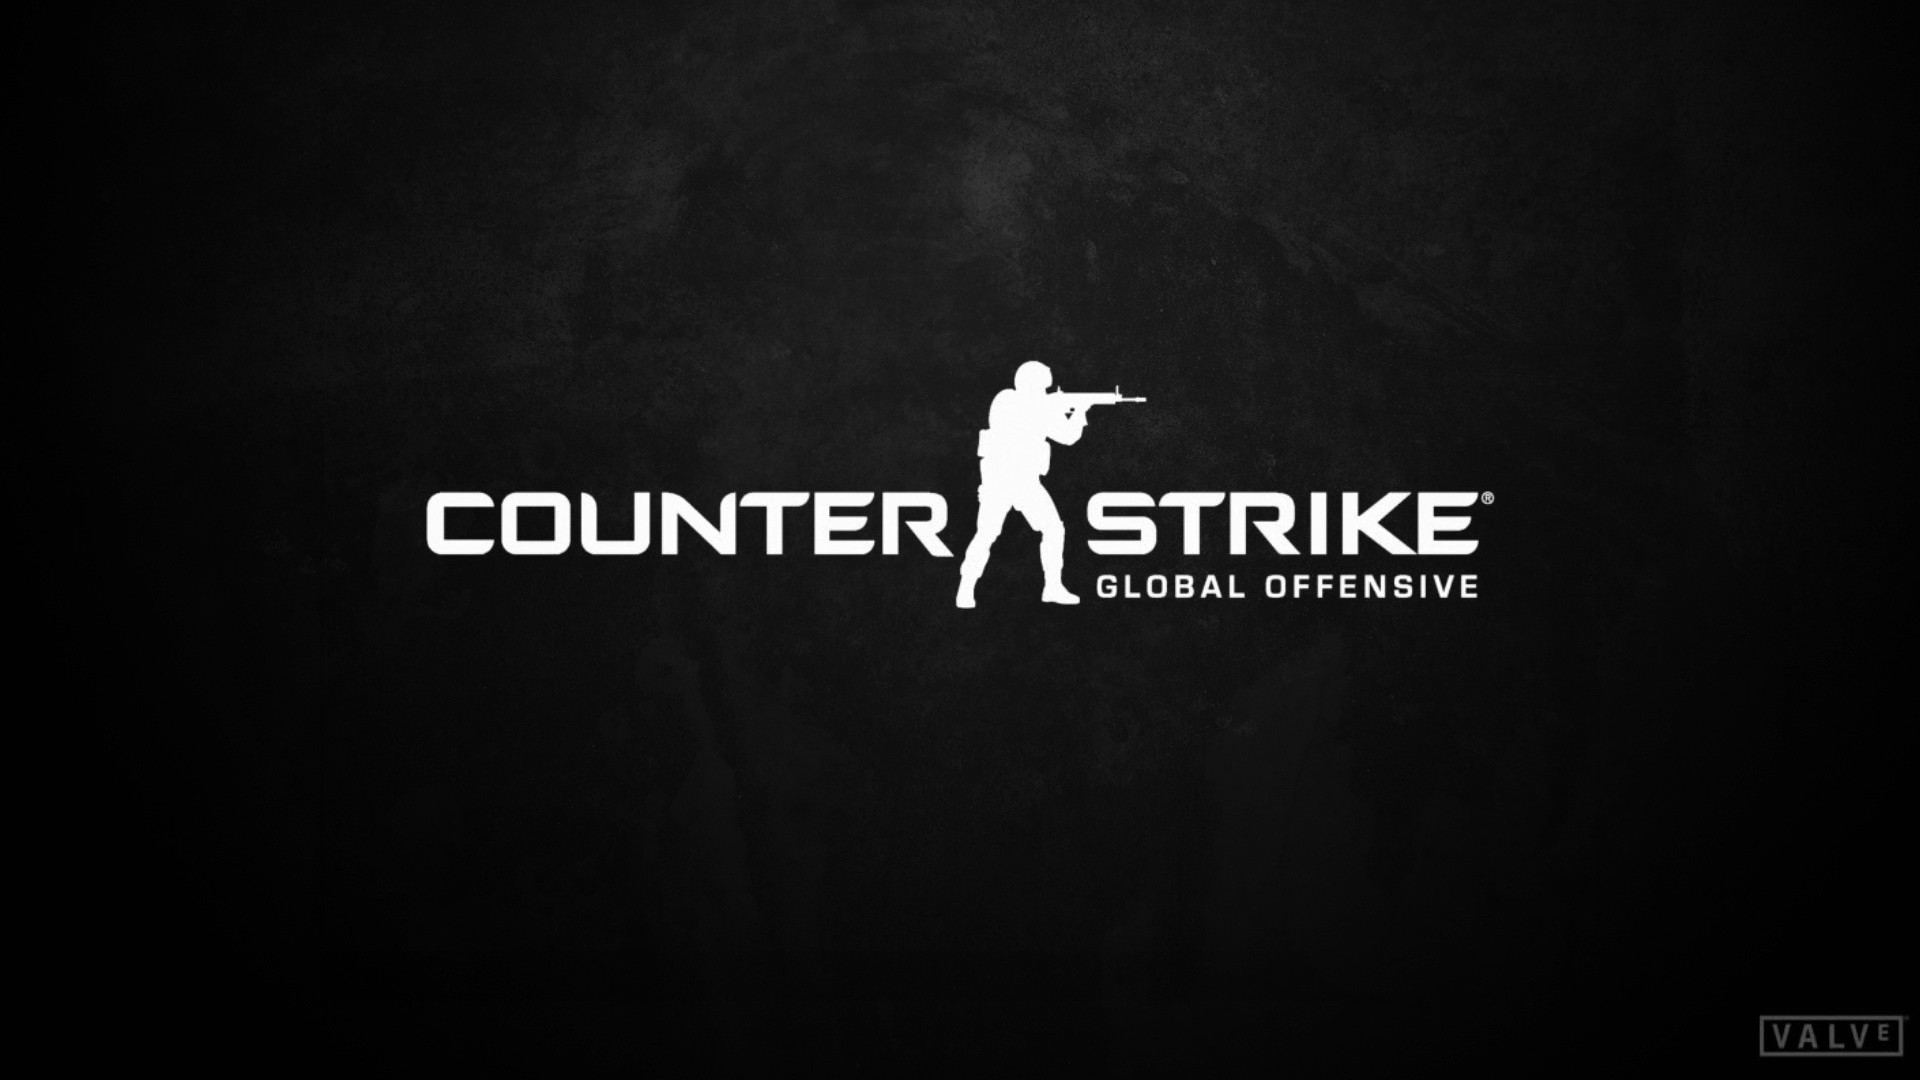 Counter Strike – HD Wallpapers